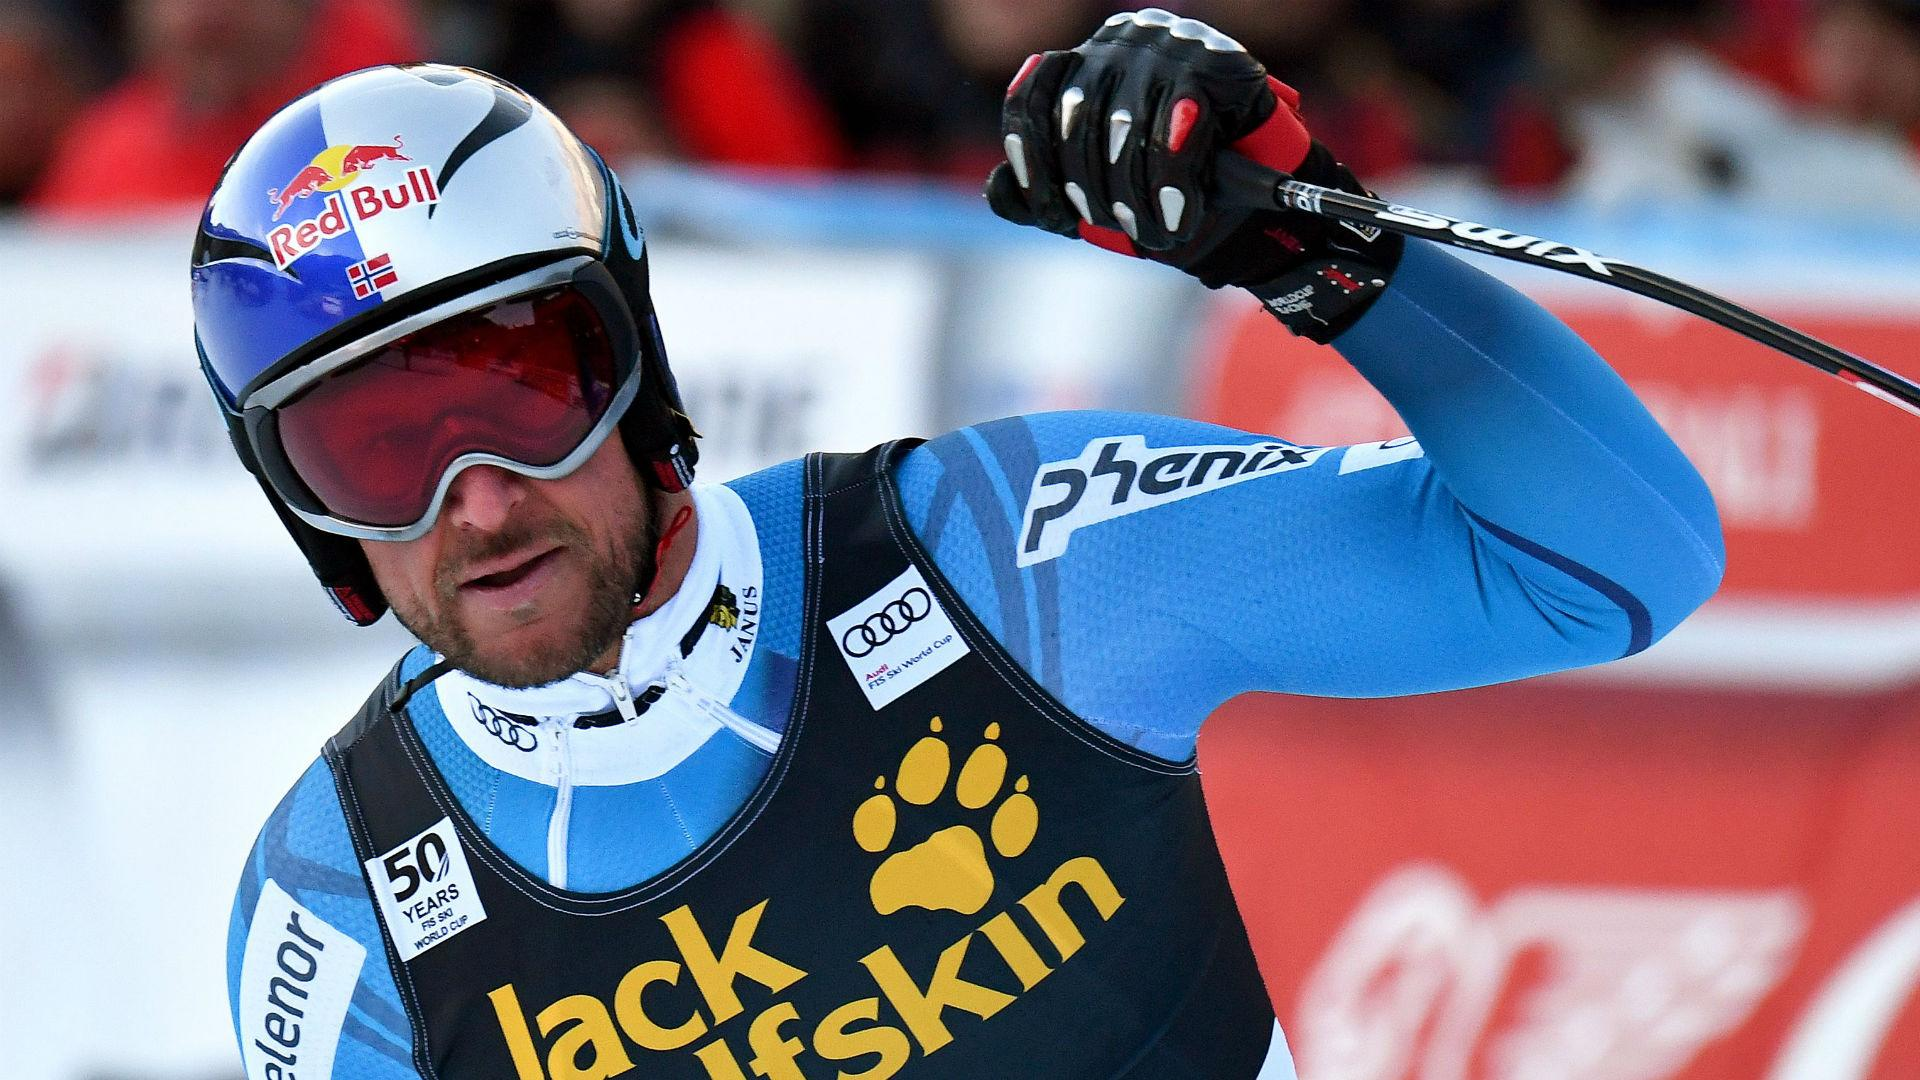 Skiing: Season over for Svindal, Ligety